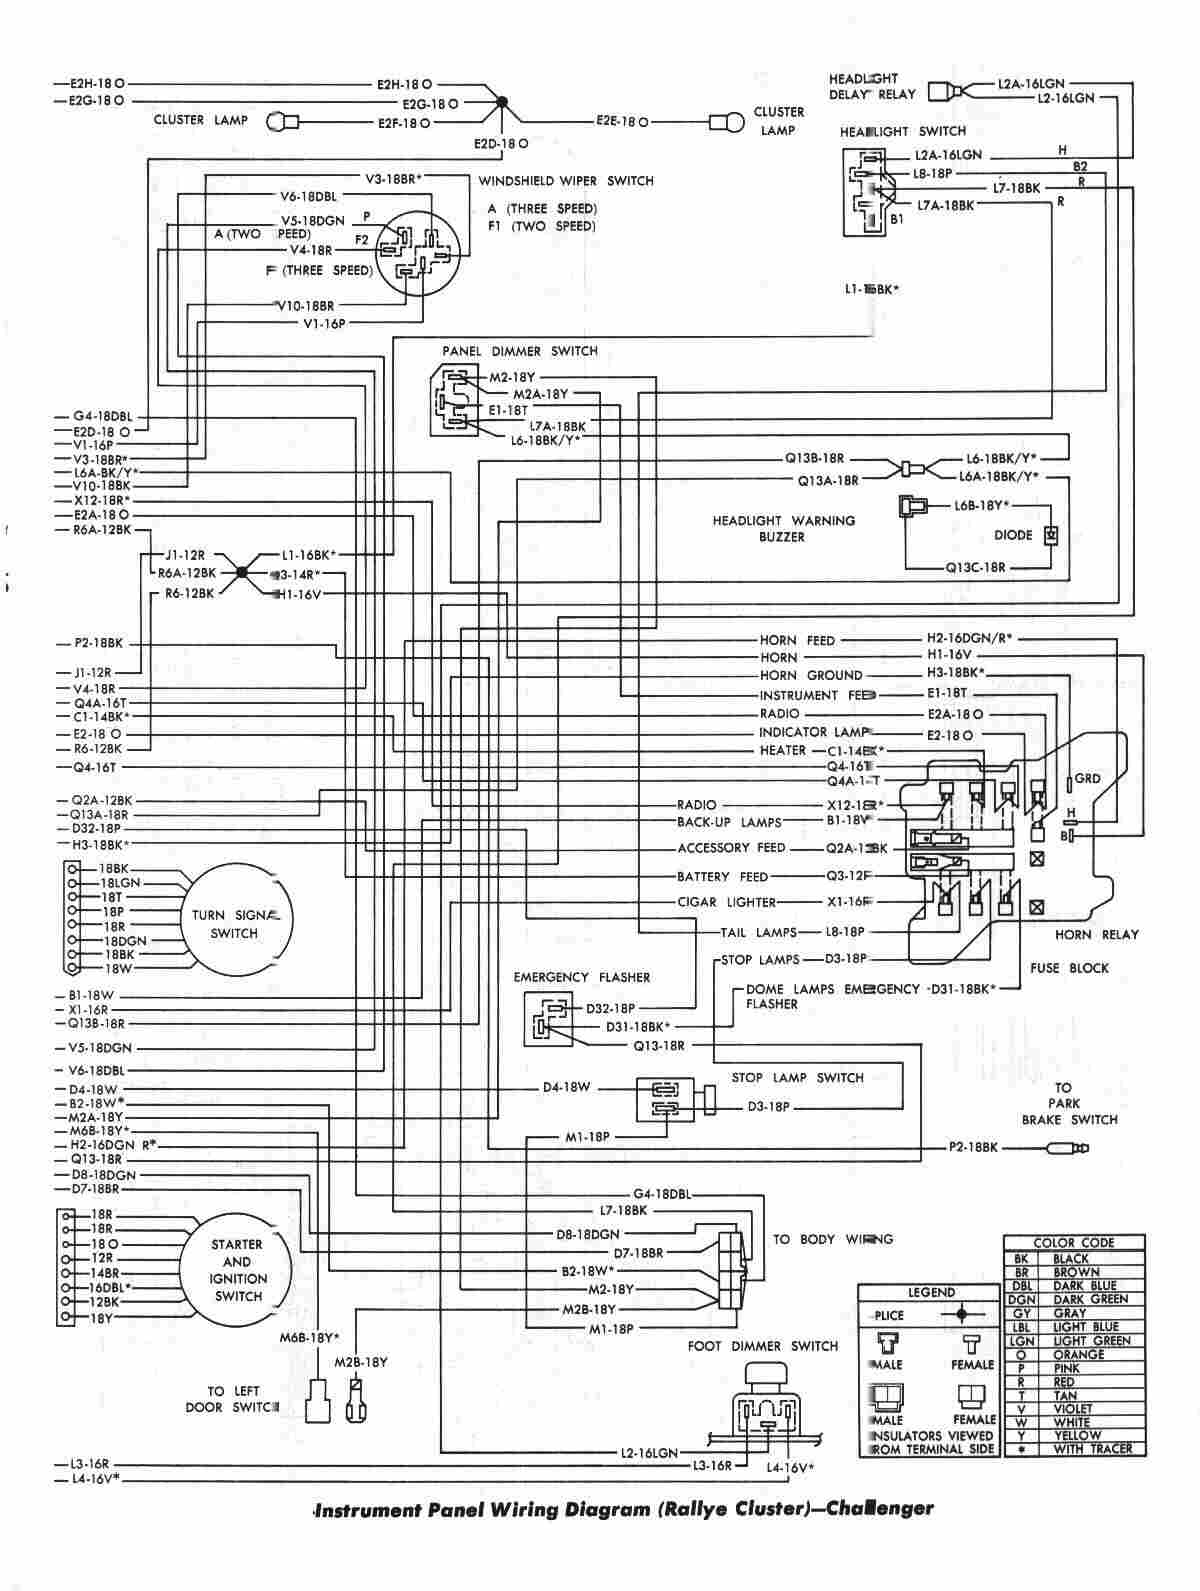 Dodge+Challenger+1970+Instrument+Panel+Wiring+Diagram+(Rallye+Cluster) dodge challenger 1970 instrument panel wiring diagram (rallye 1970 dodge challenger wiring diagram at bayanpartner.co